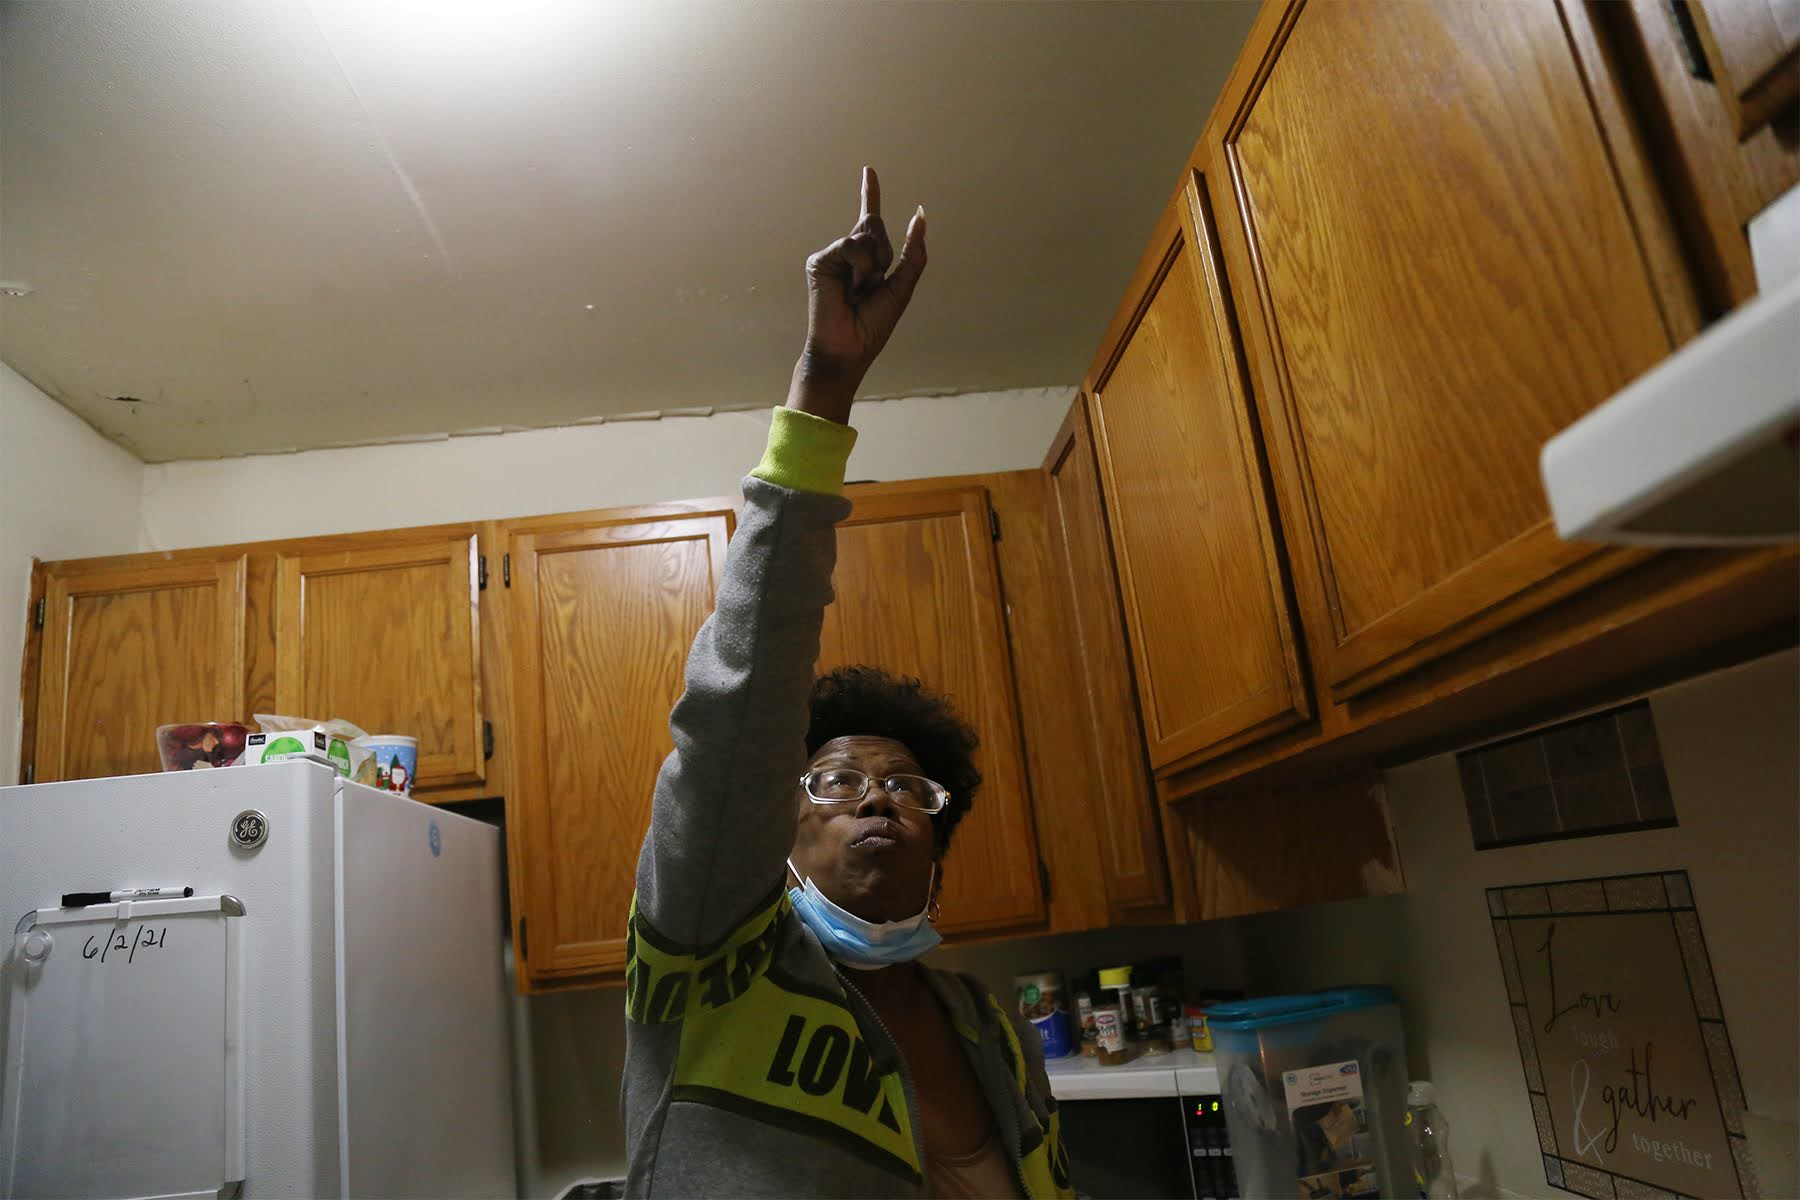 Barbara Brown, a retiree who moved to Hi View in 2018, points to a spot in the kitchen of her Hi View Gardens apartment where water comes in during rainstorms. (Photo by Ryan Loew/PublicSource)